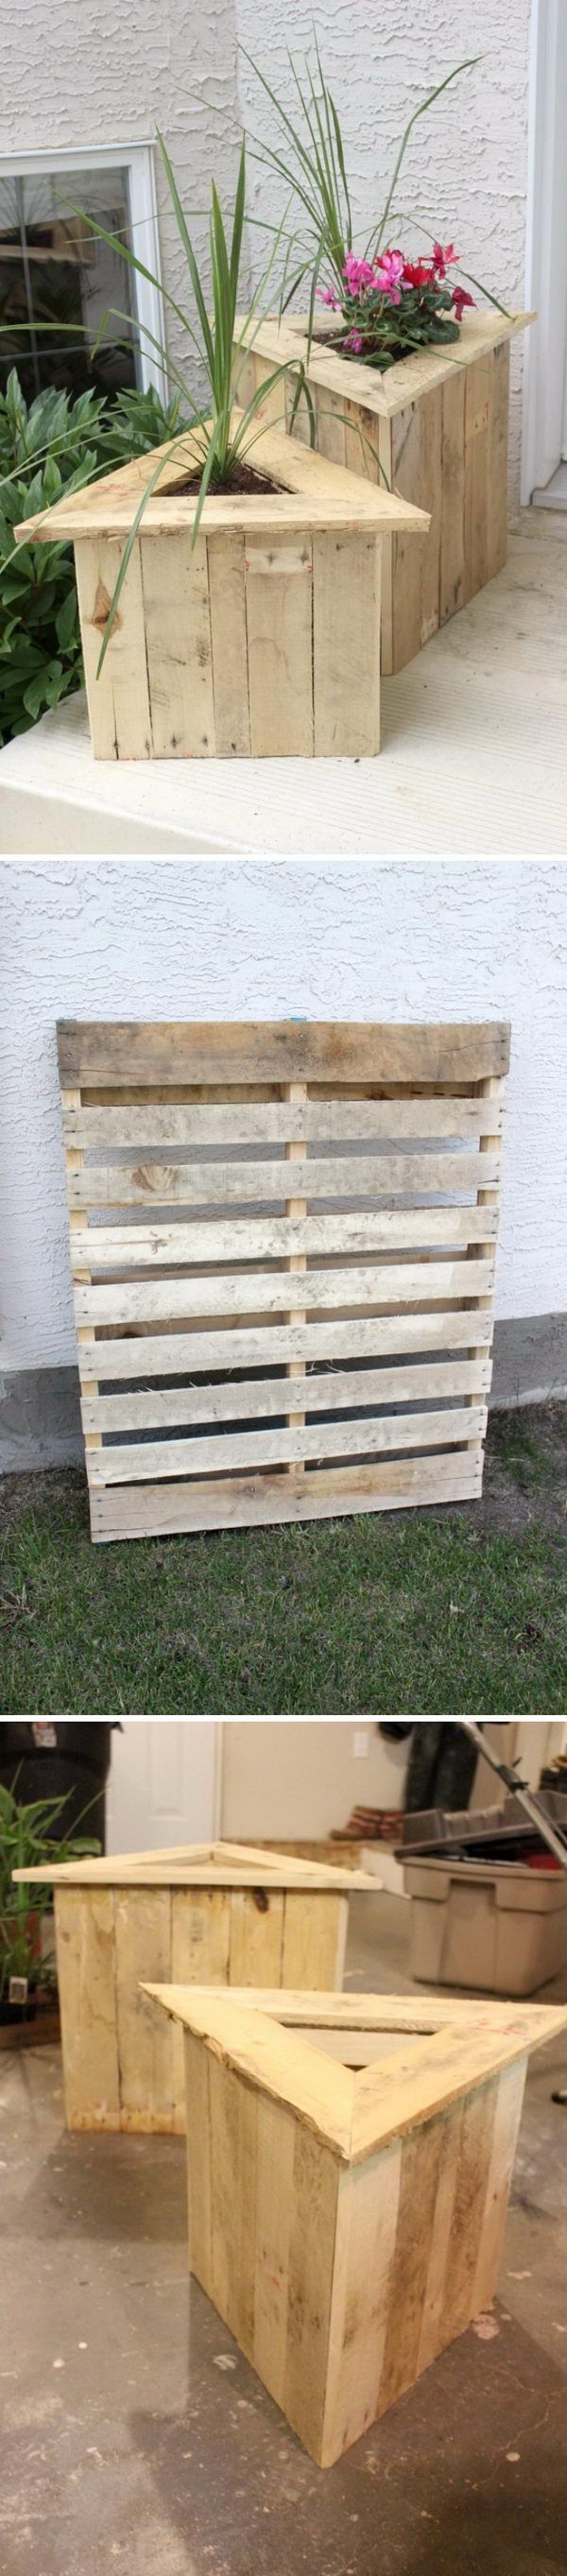 Triangle Wood Pallet Planters.